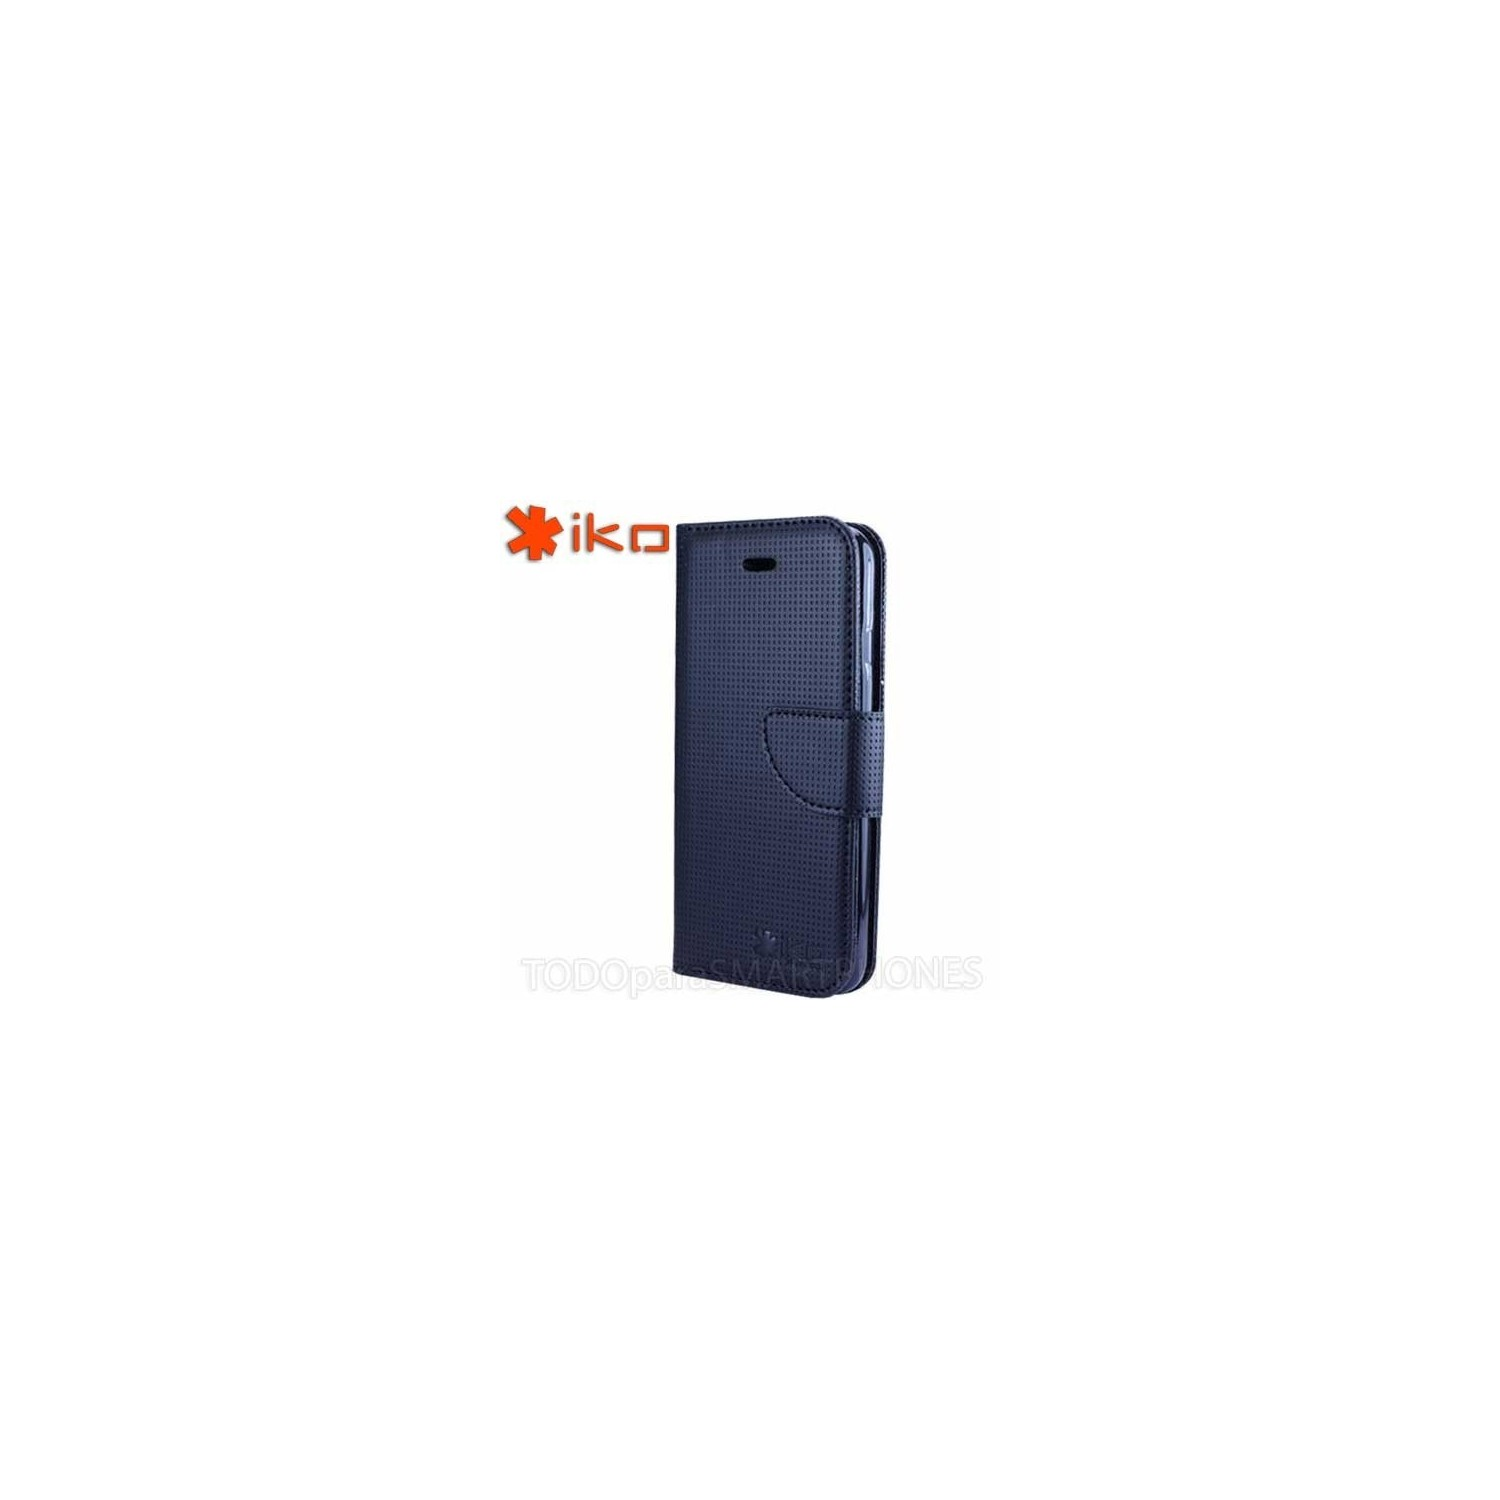 Funda IKO iPhone 6s/6 Wallet Negro - Negro